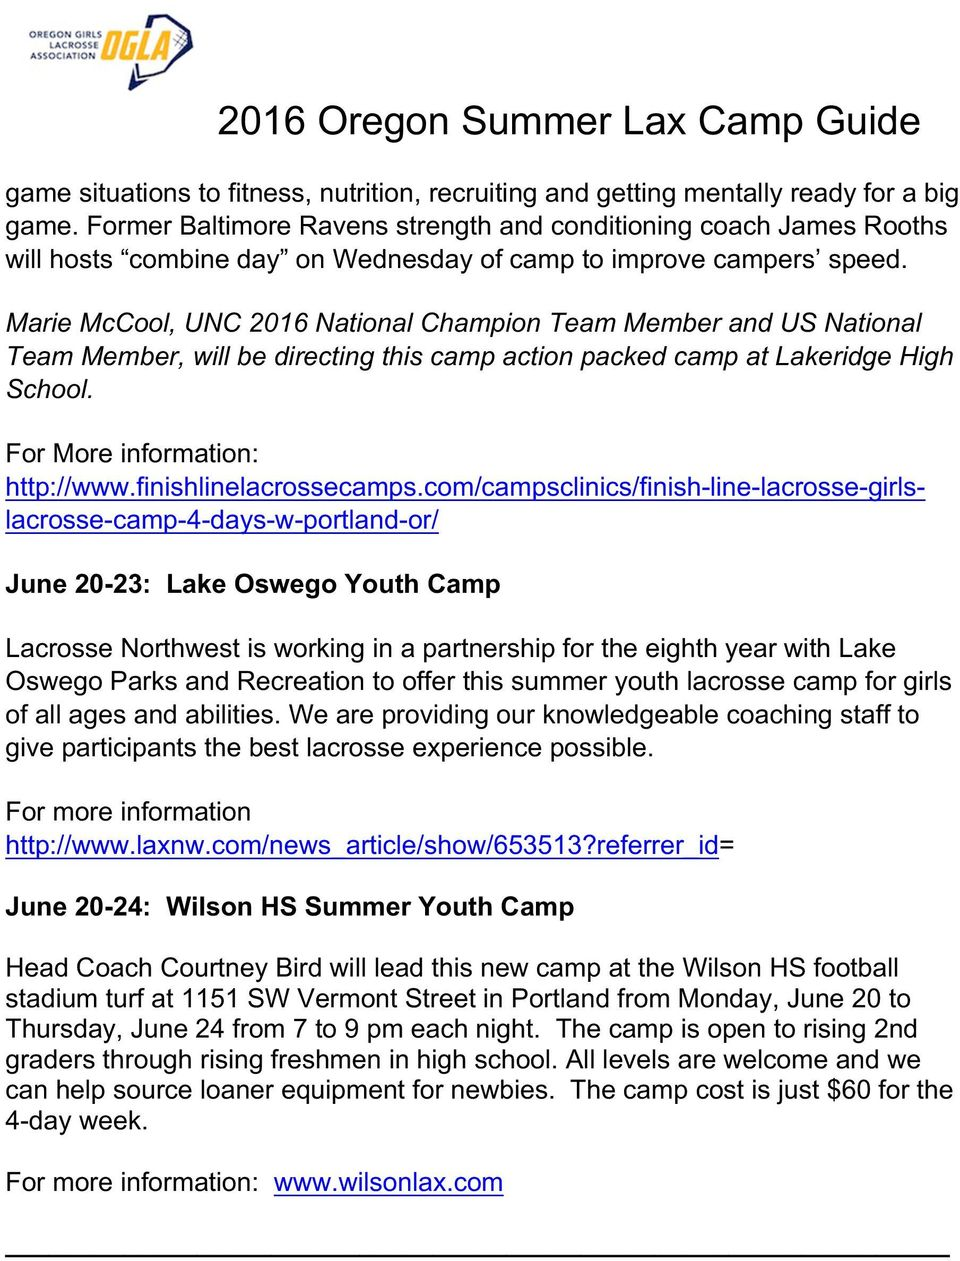 Marie McCool, UNC 2016 National Champion Team Member and US National Team Member, will be directing this camp action packed camp at Lakeridge High School. For More information: http://www.